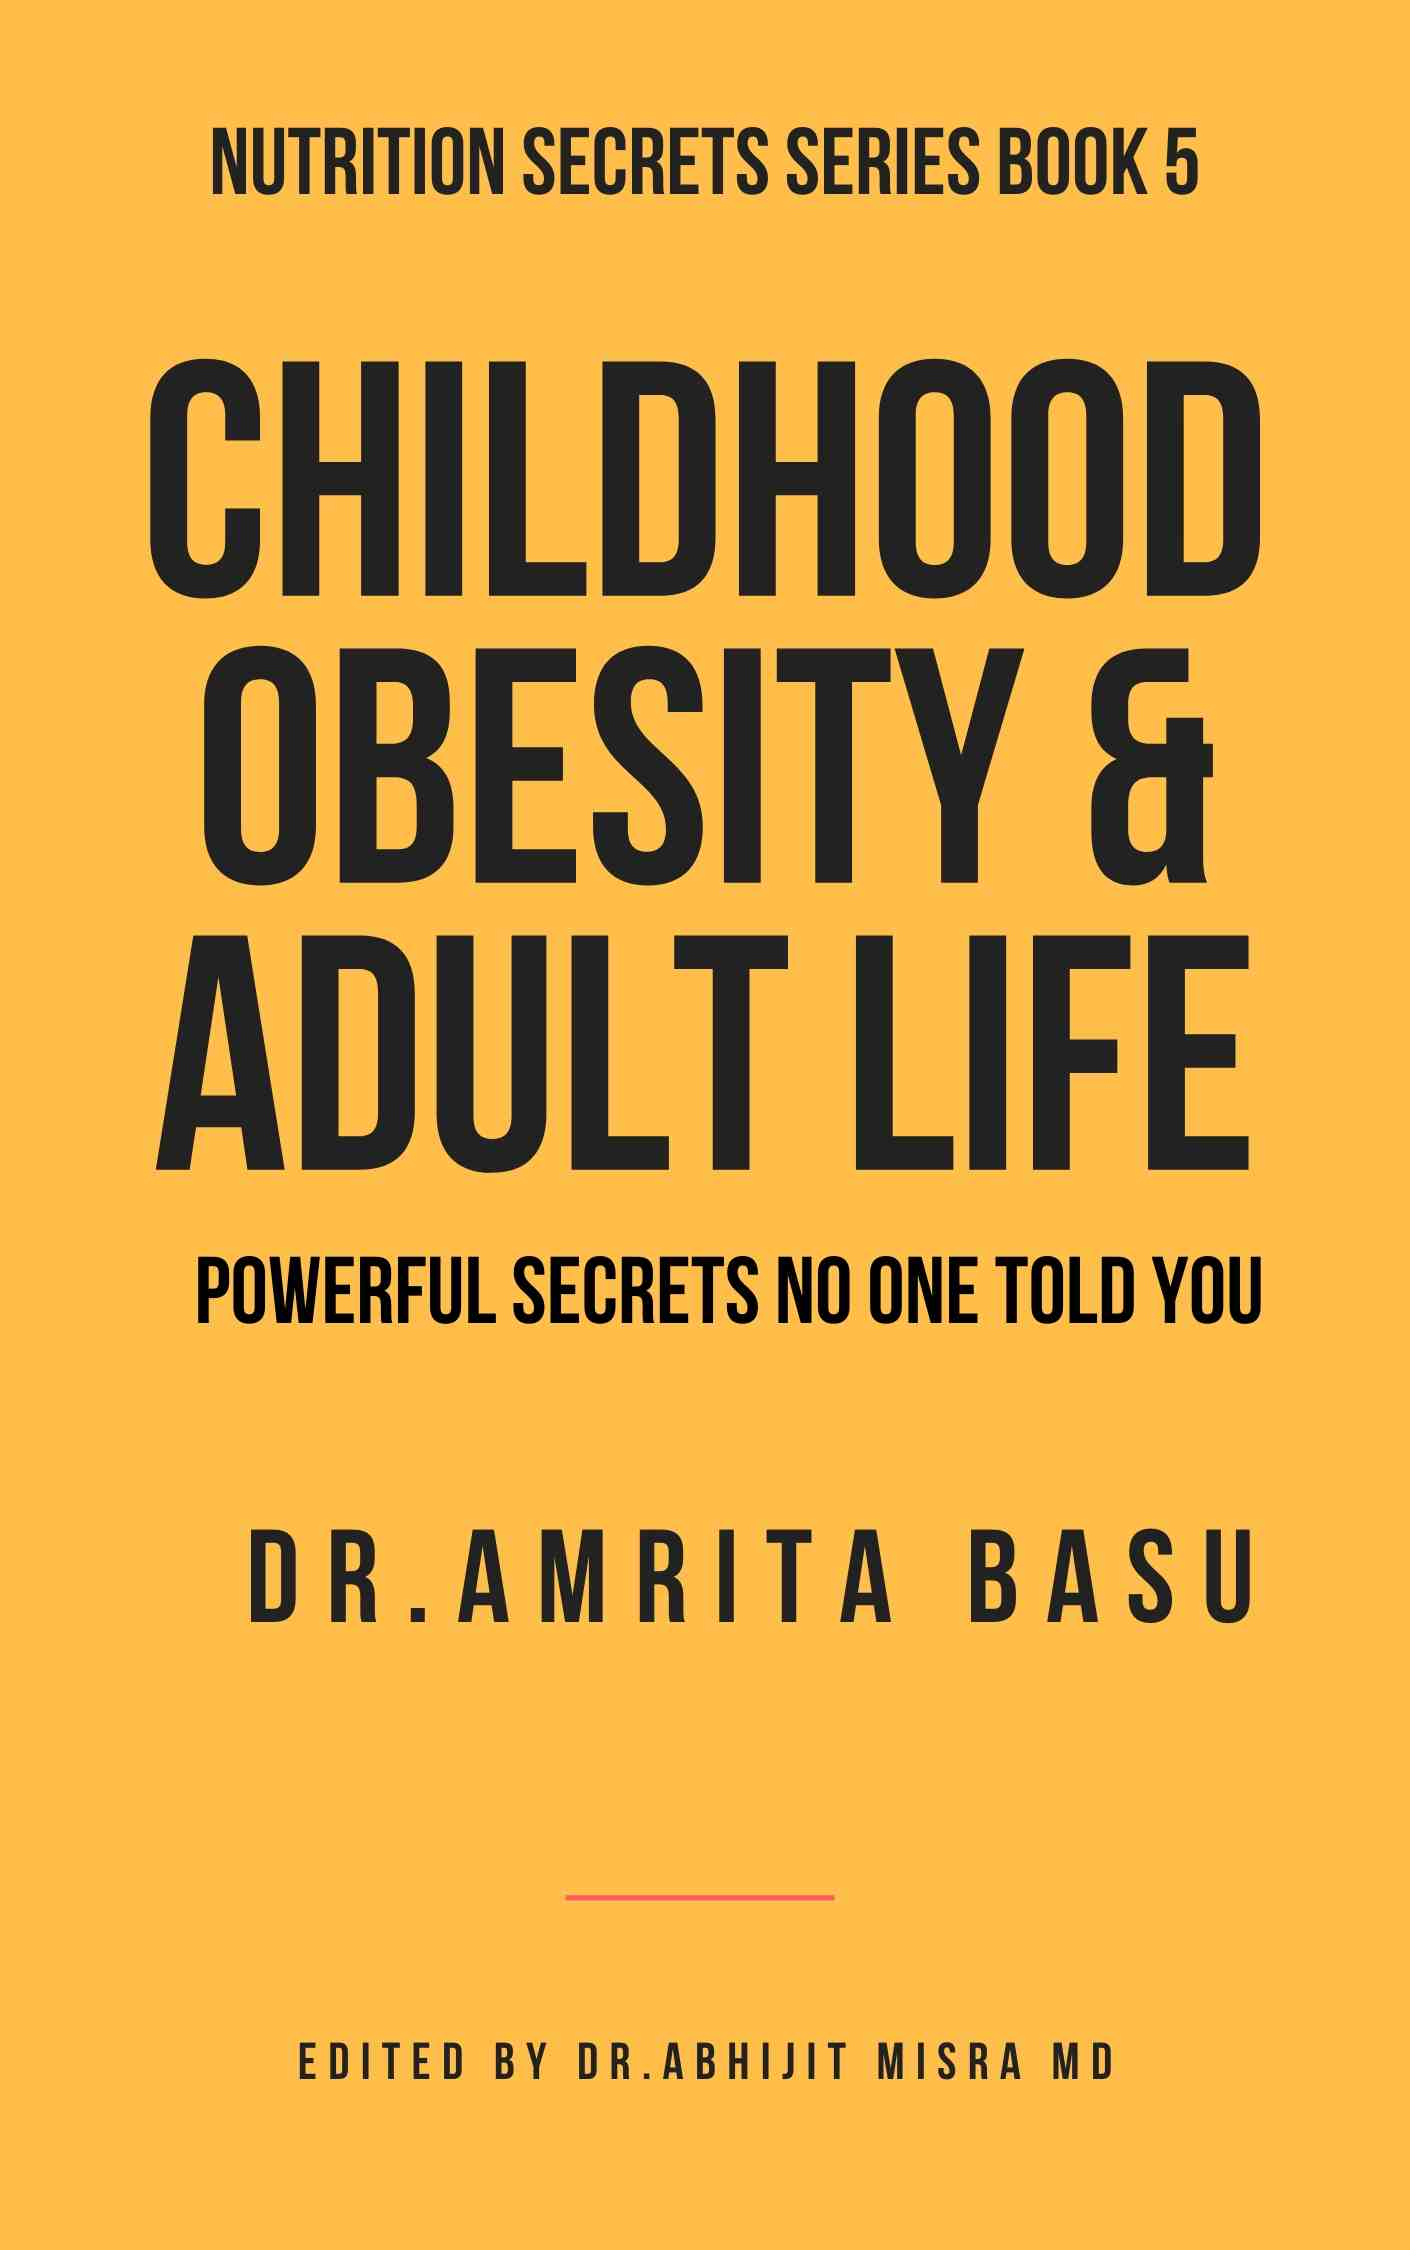 CHILDHOOD OBESITY & ADULT LIFE BY DR. AMRITA BASU #BlogchatterEbook